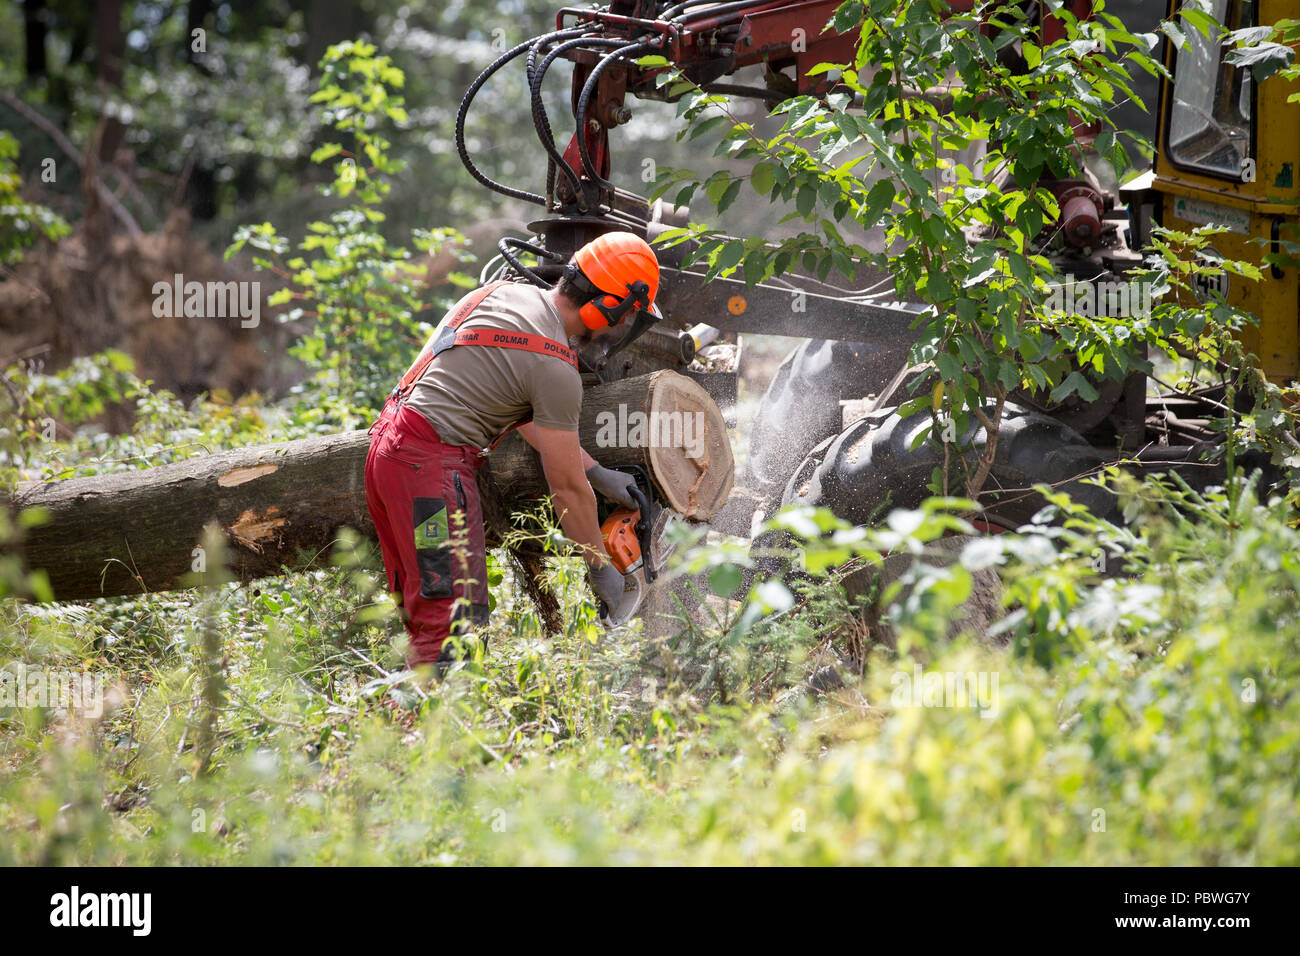 Herford, Germany. 30th July, 2018. Forester Paul Fubel works on the trunk of an oak with a chain saw. The State of North Rhine-Westphalia's Forest and Timber enterprise presents its Sustainability Report 2017. This includes the commercial annual report of the forestry as well as current information on climate change and nature conservation. Credit: Friso Gentsch/dpa/Alamy Live News - Stock Image